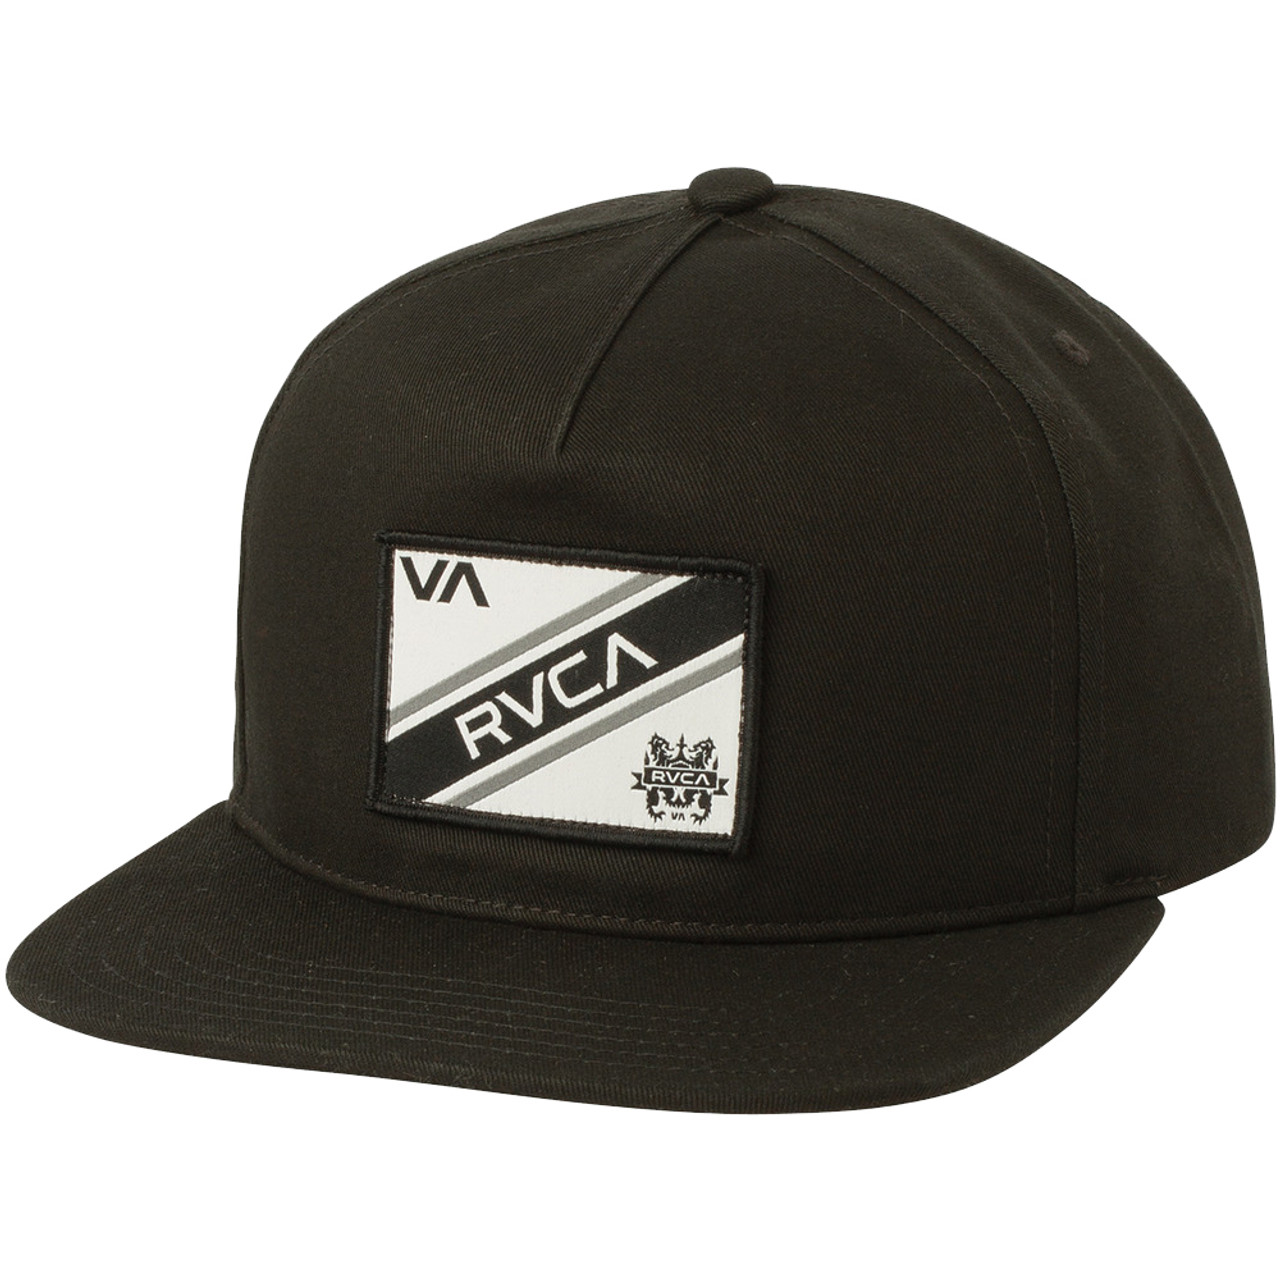 5e072339 RVCA Hat - Places - Black - Surf and Dirt